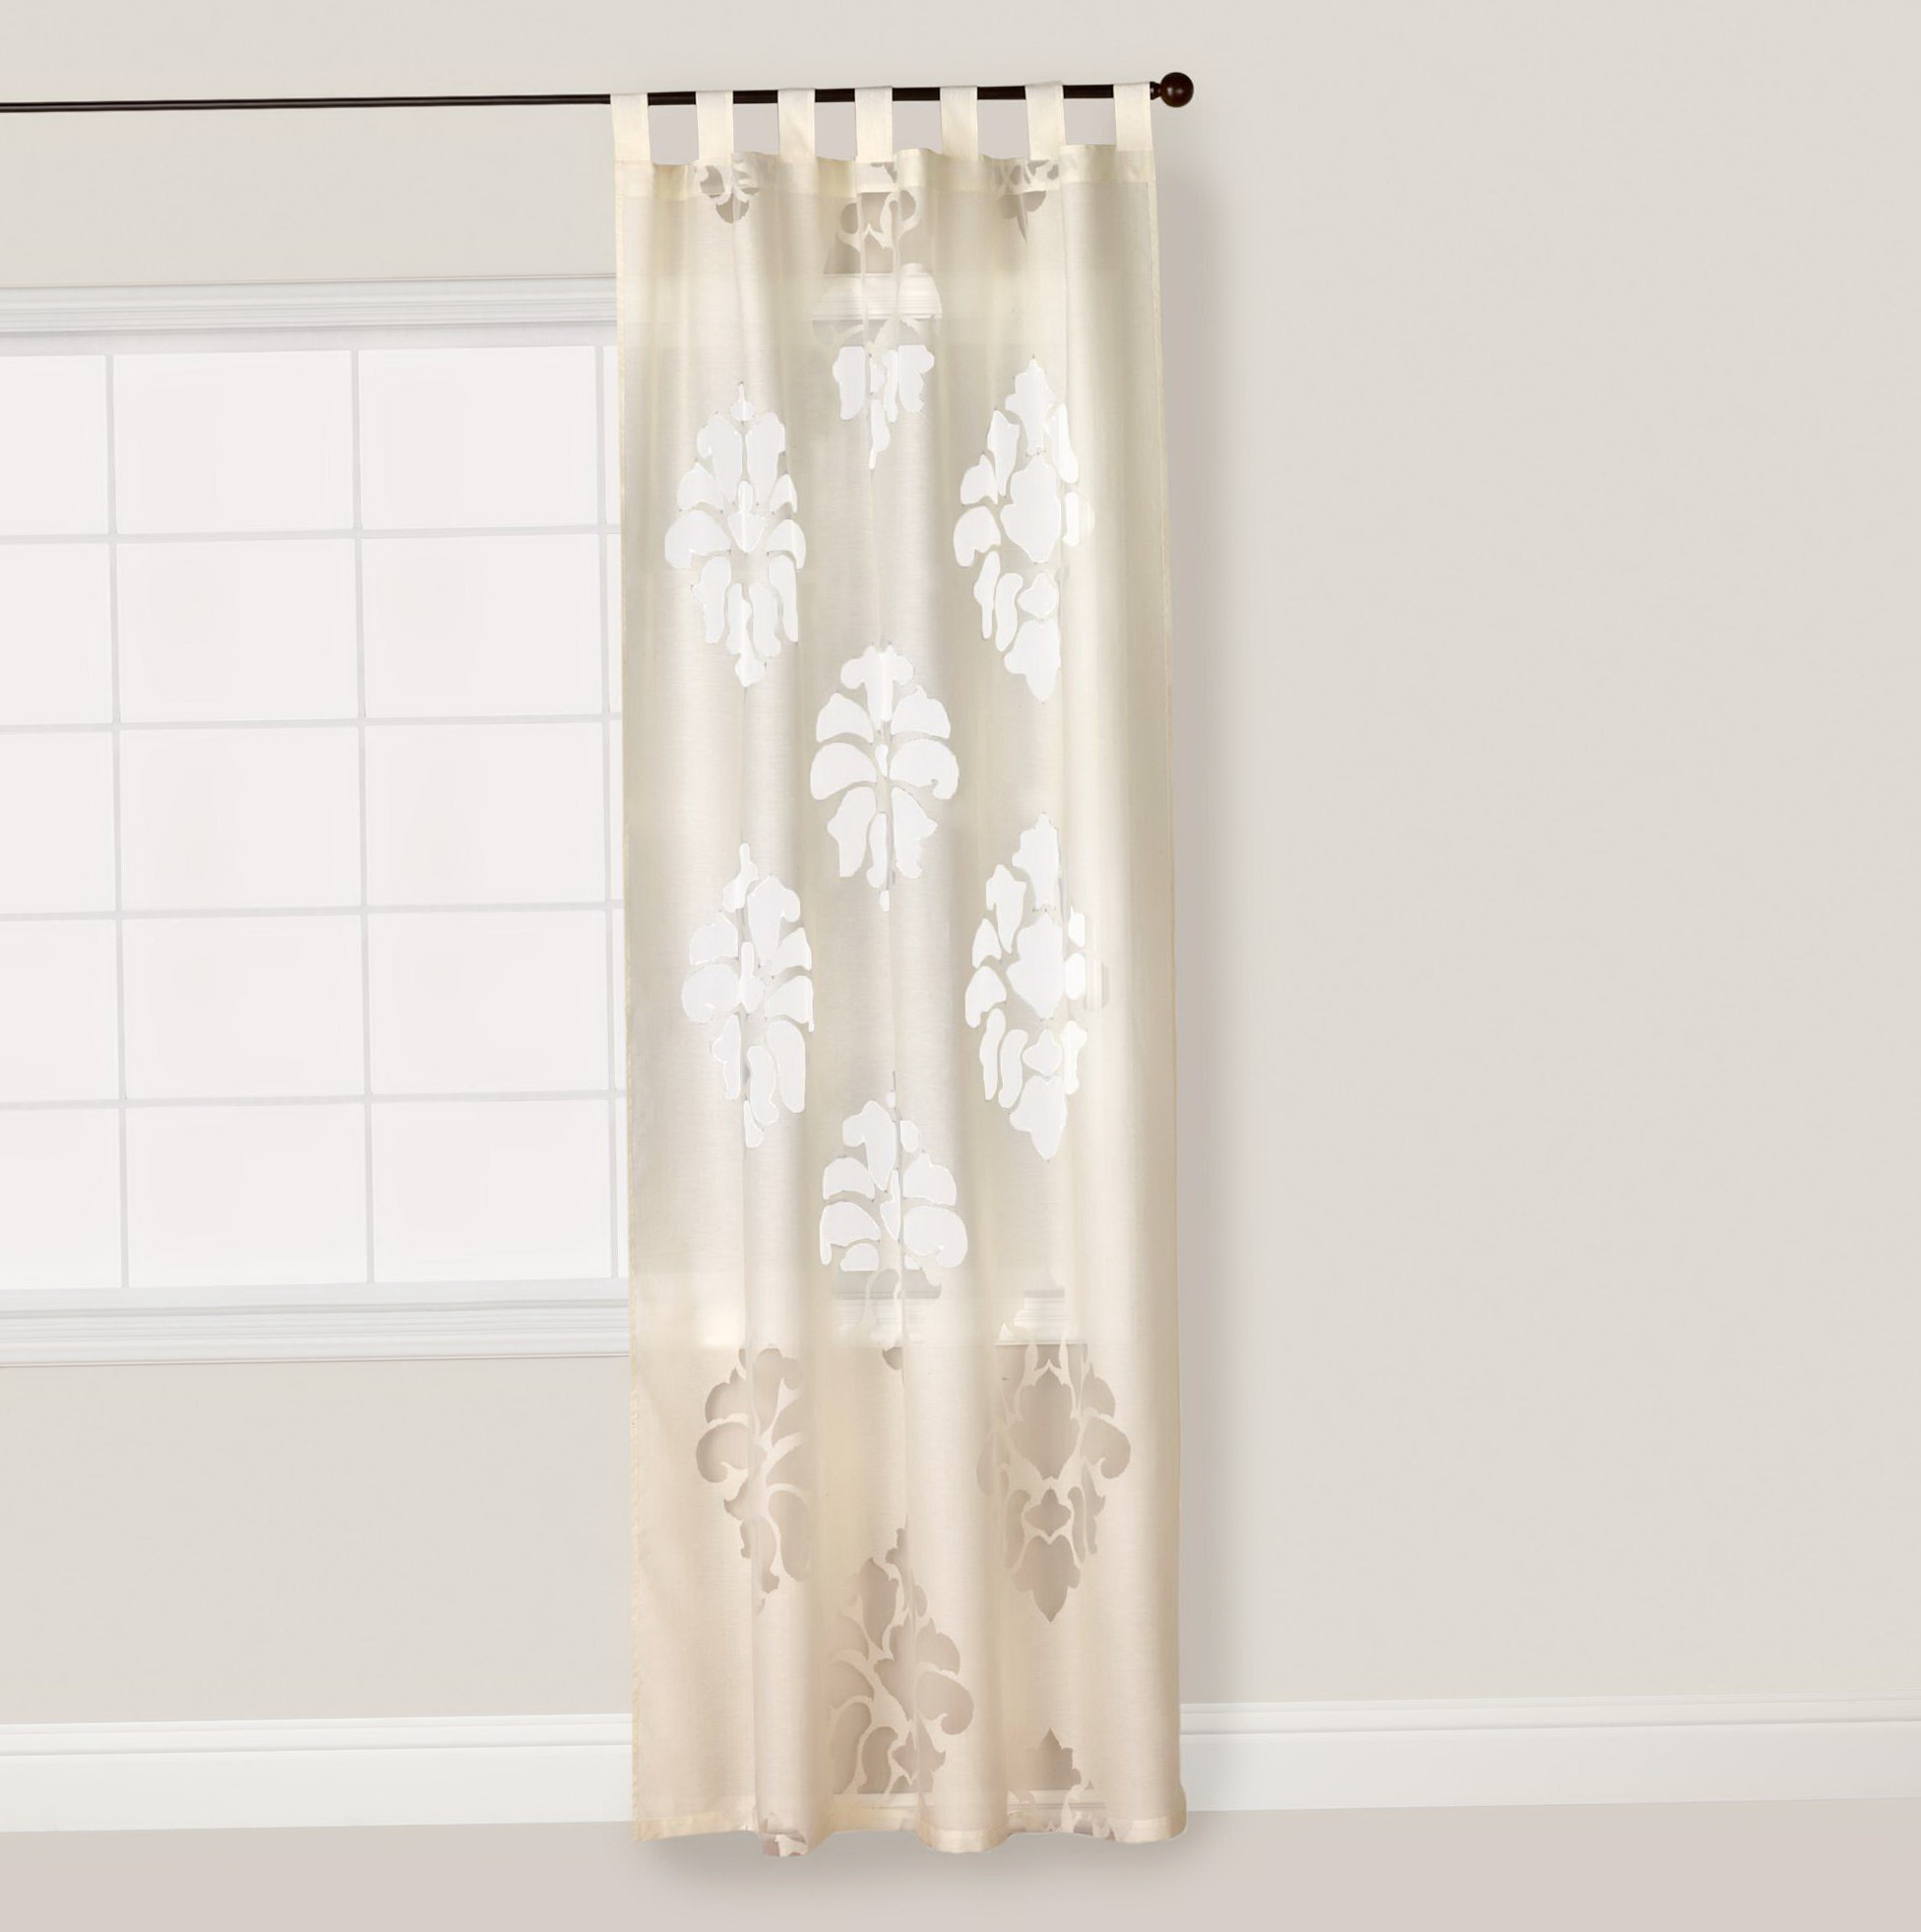 Sheer Curtains Online India Home Decorations Idea